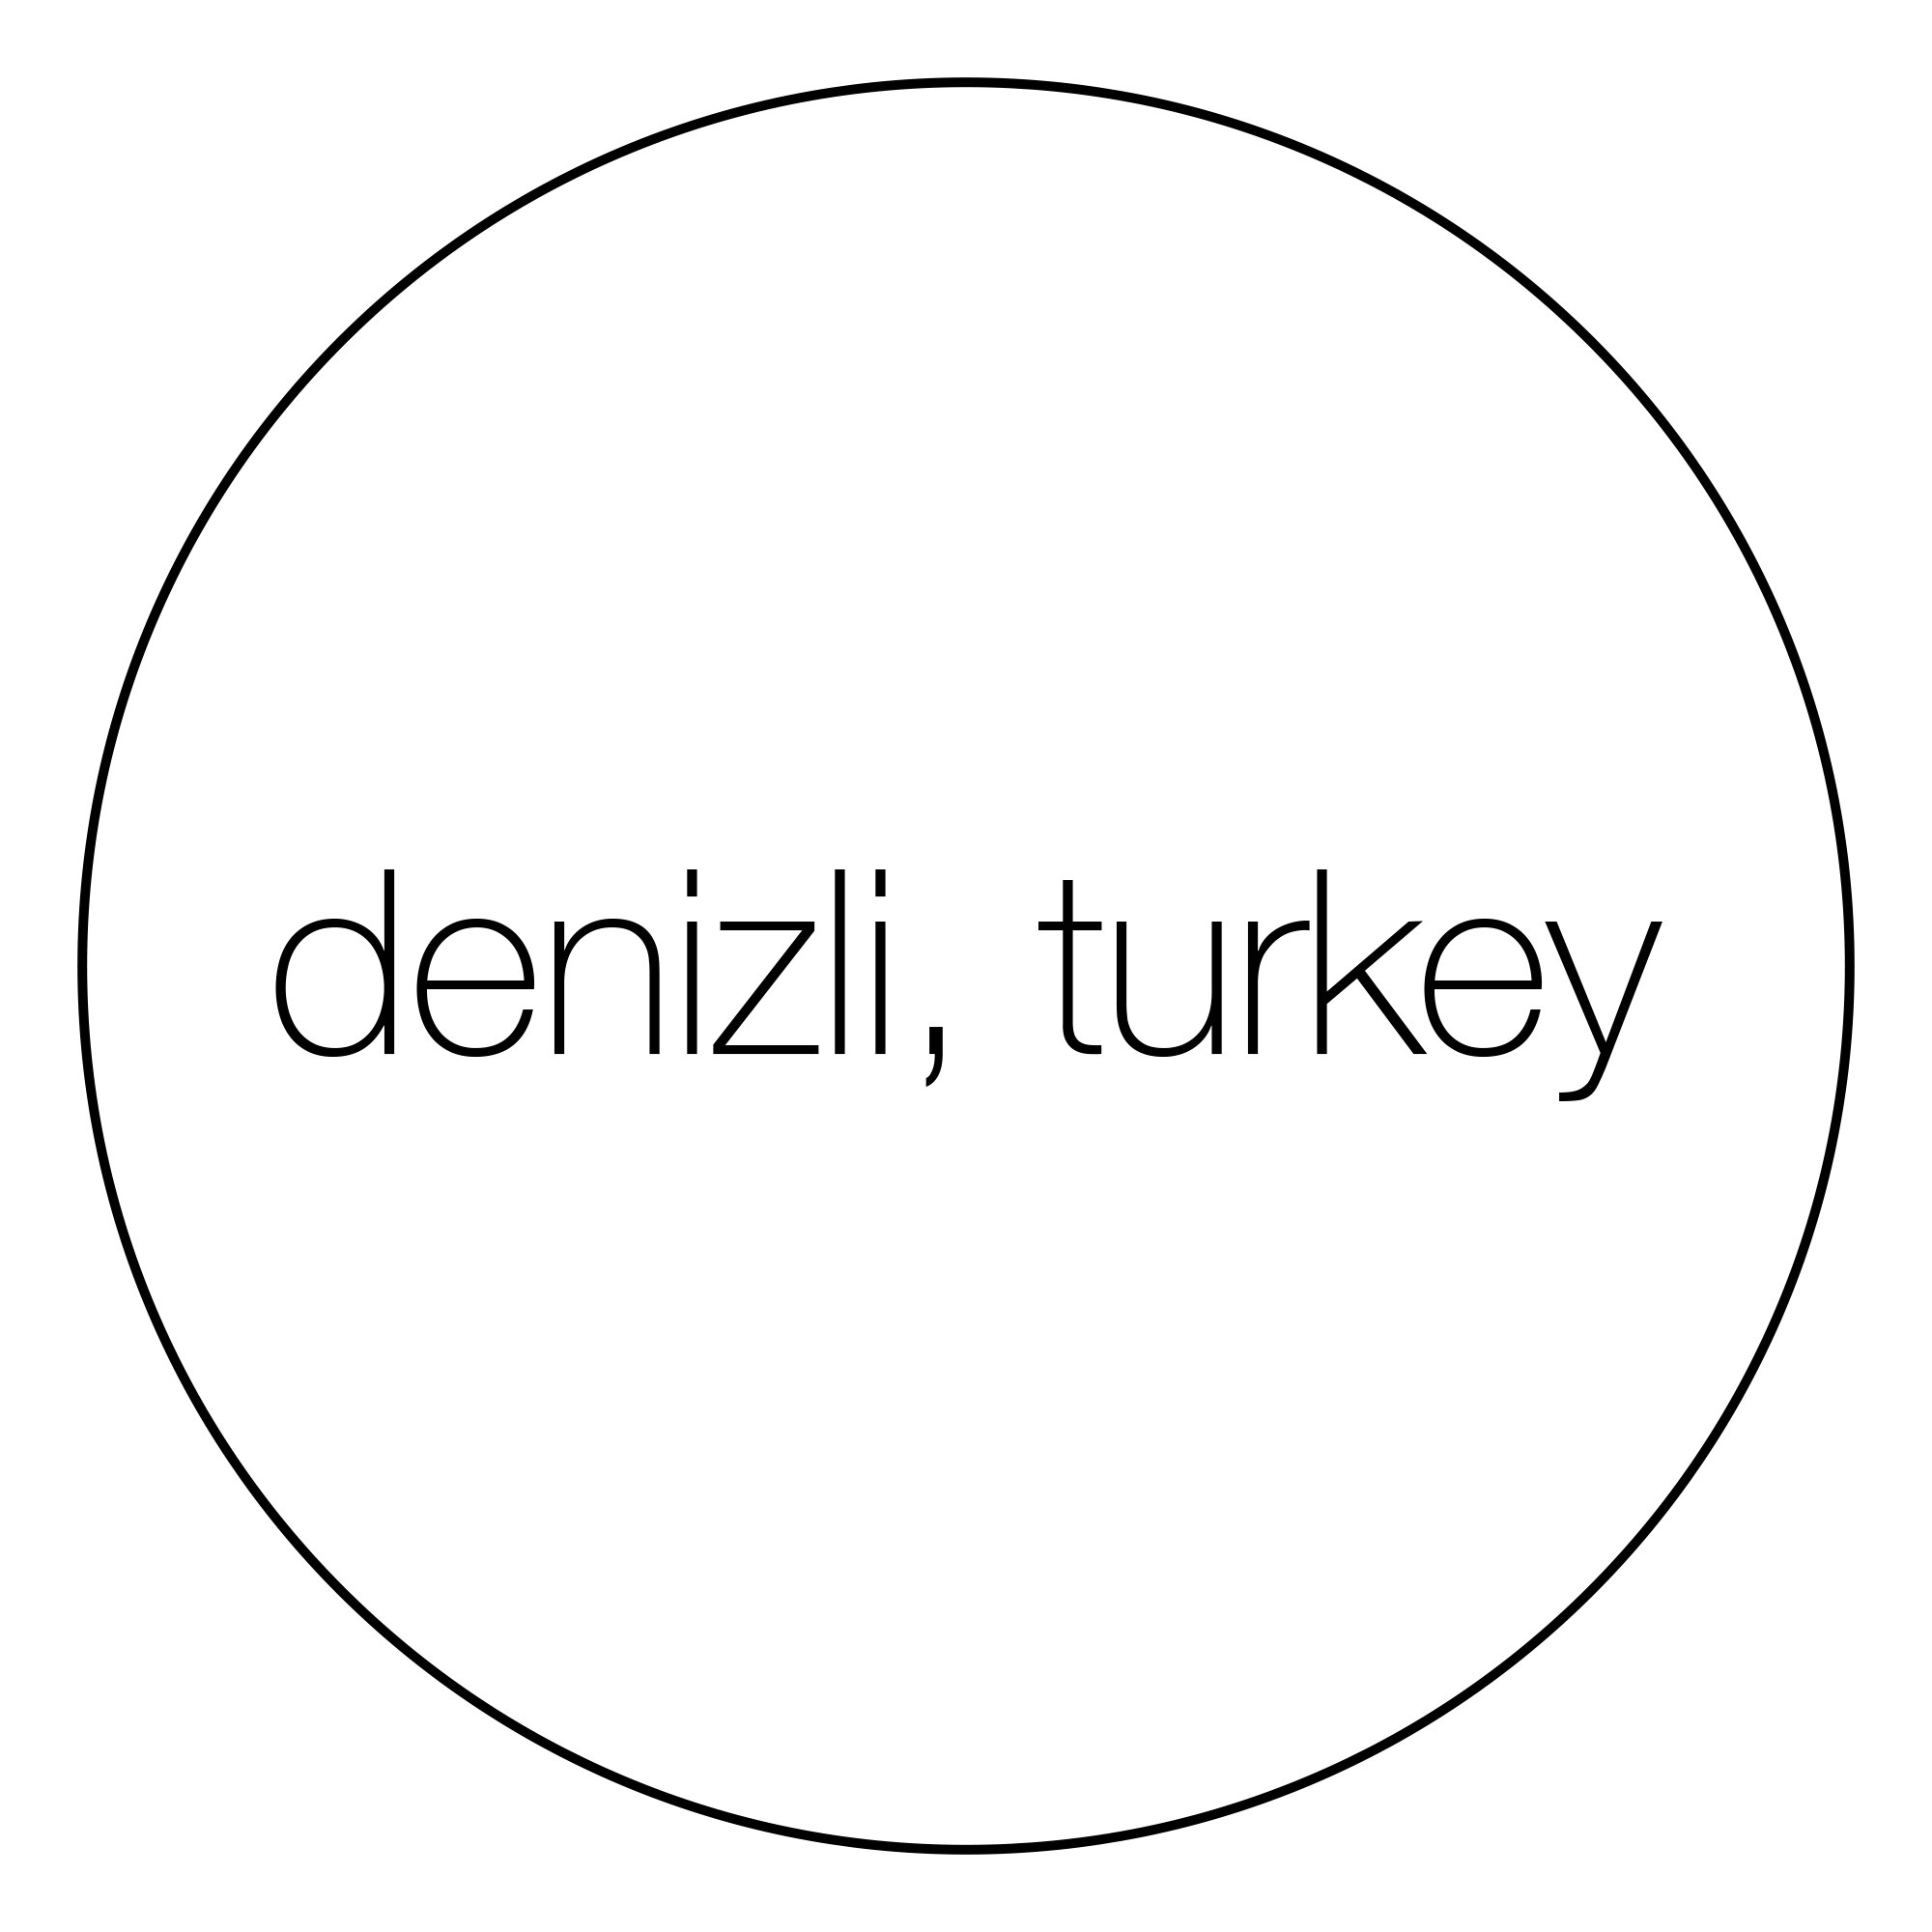 attribute-origin-denizli-turkey